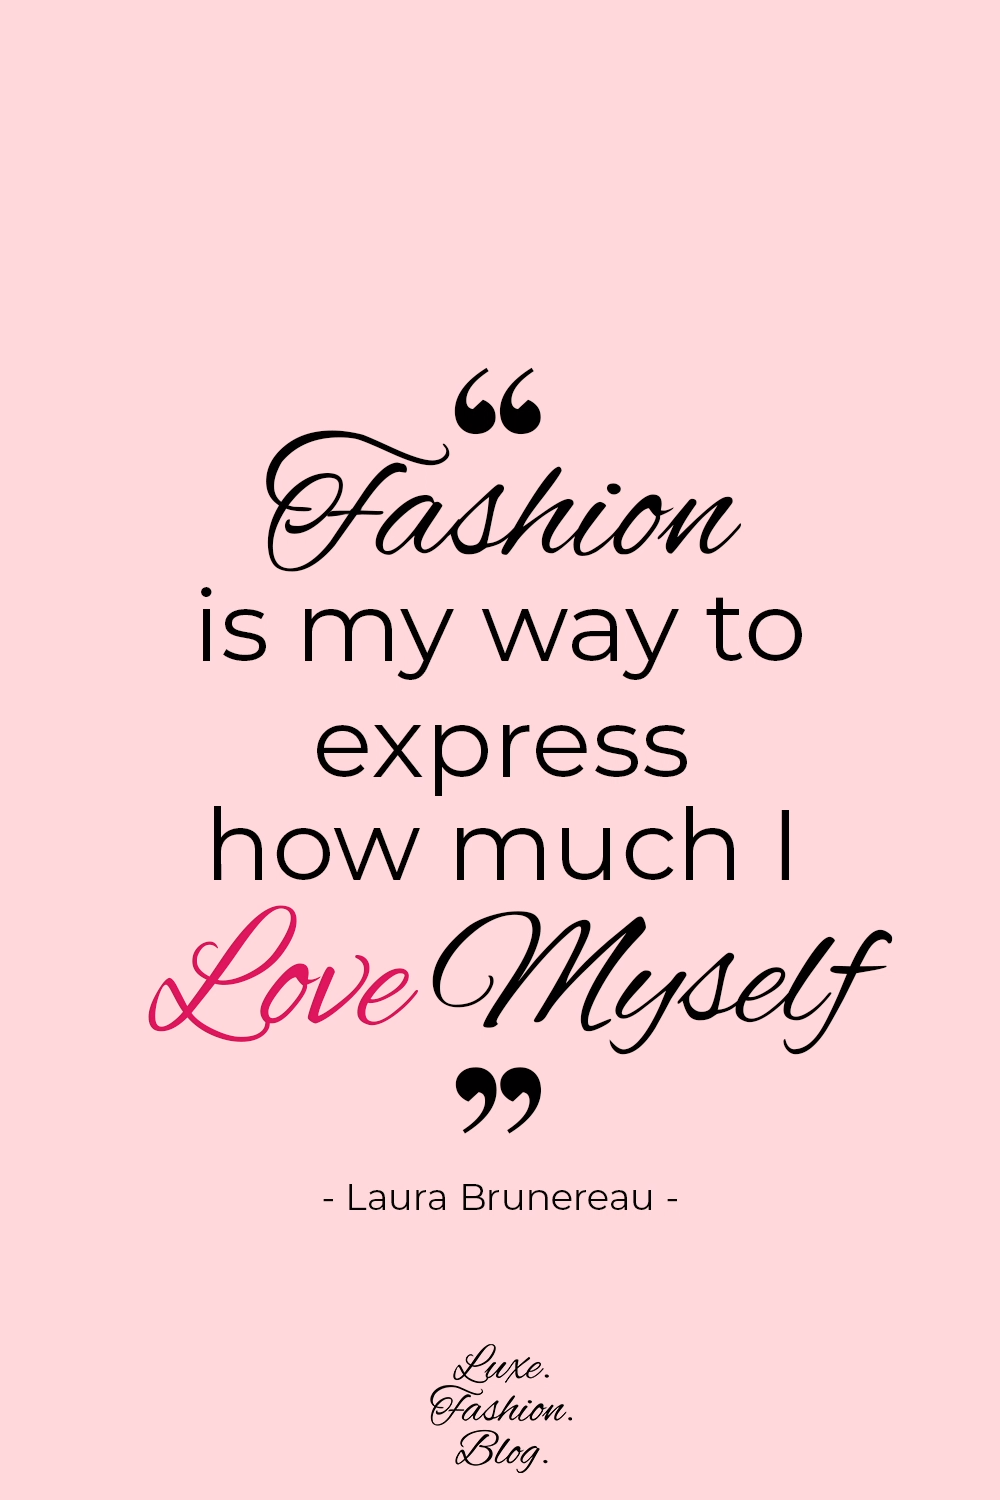 Love for Fashion Quotes - St. Valentine's Day | Quotes Self Love | LuxeFashionBlog.com